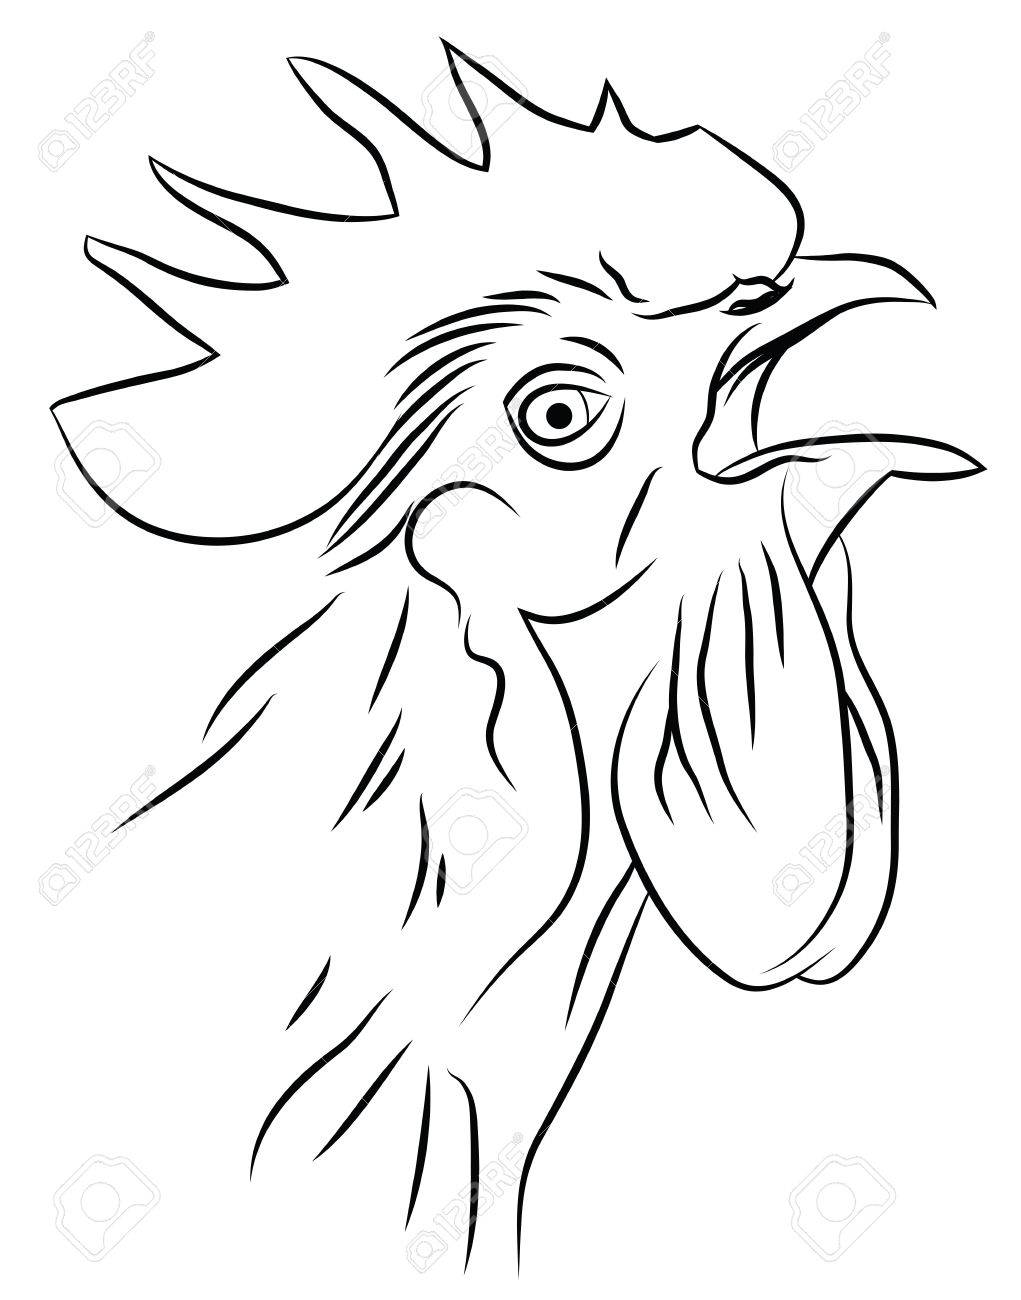 1021x1300 Sketch Of A Crowing Rooster Isolated On White Royalty Free